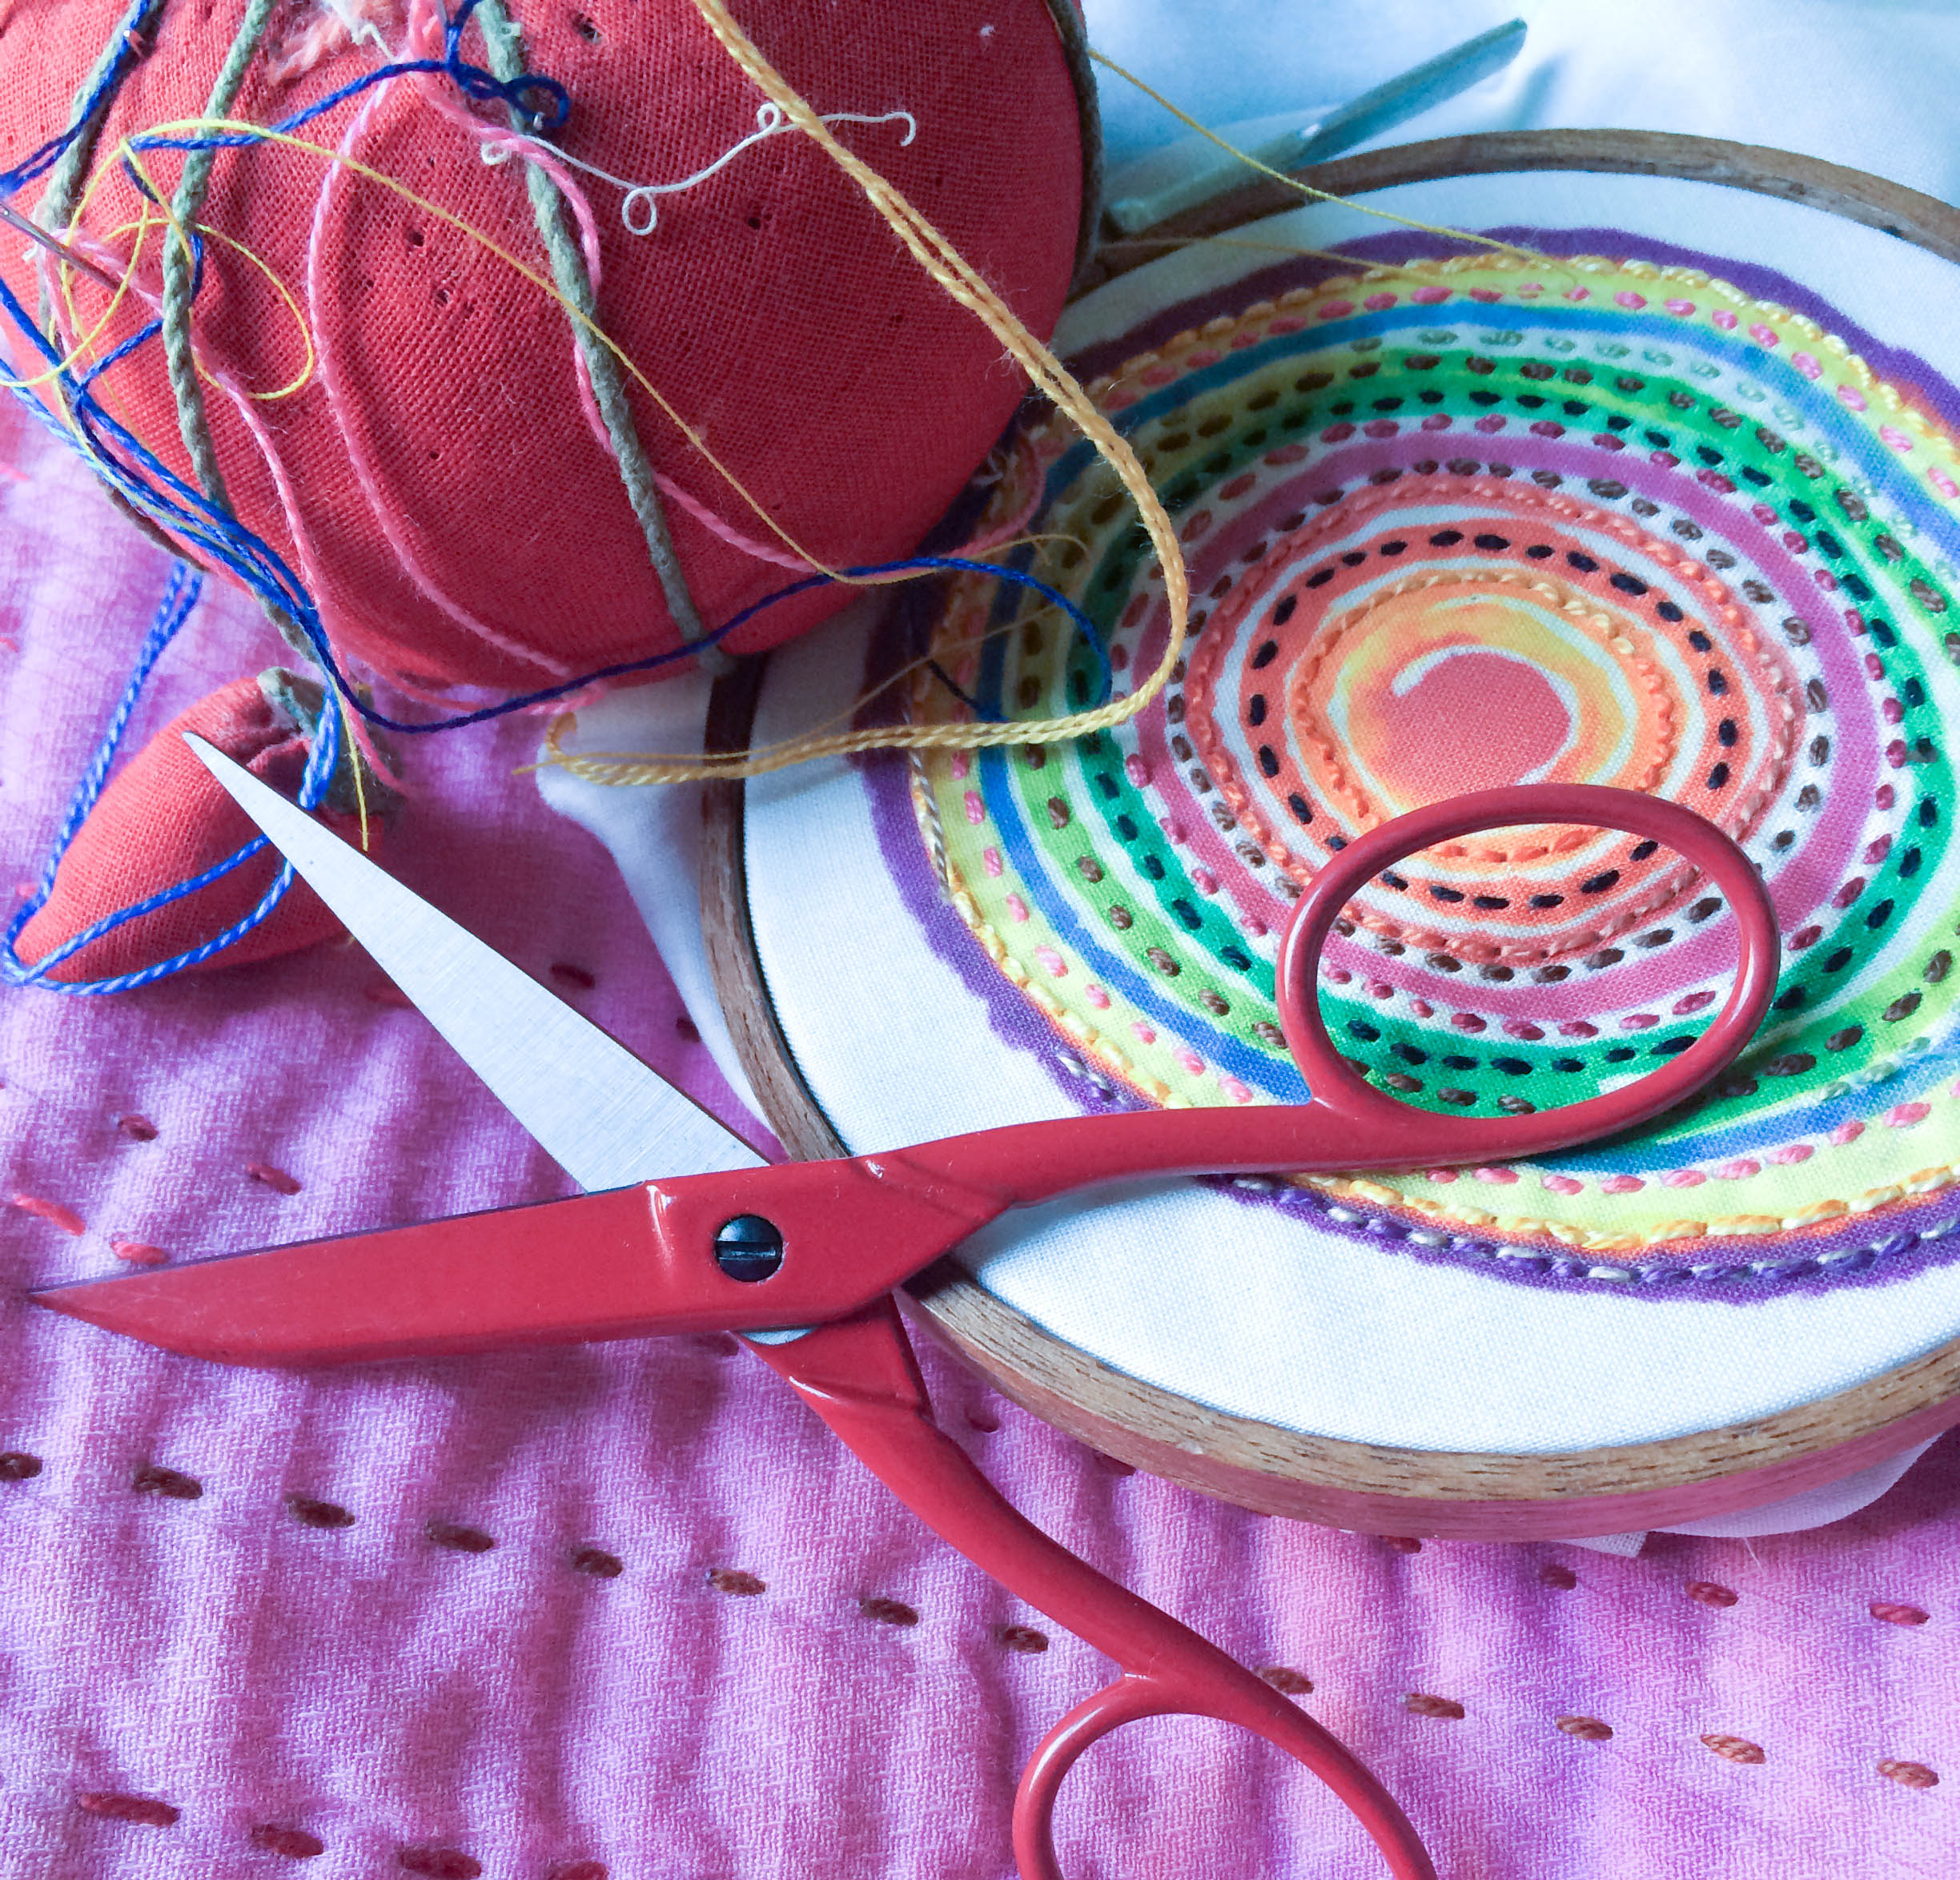 Stay tuned this weekend for a giveaway that includes these beautiful Red Scissors from Hedgehog Handworks, one of my favorite needlework suppliers......